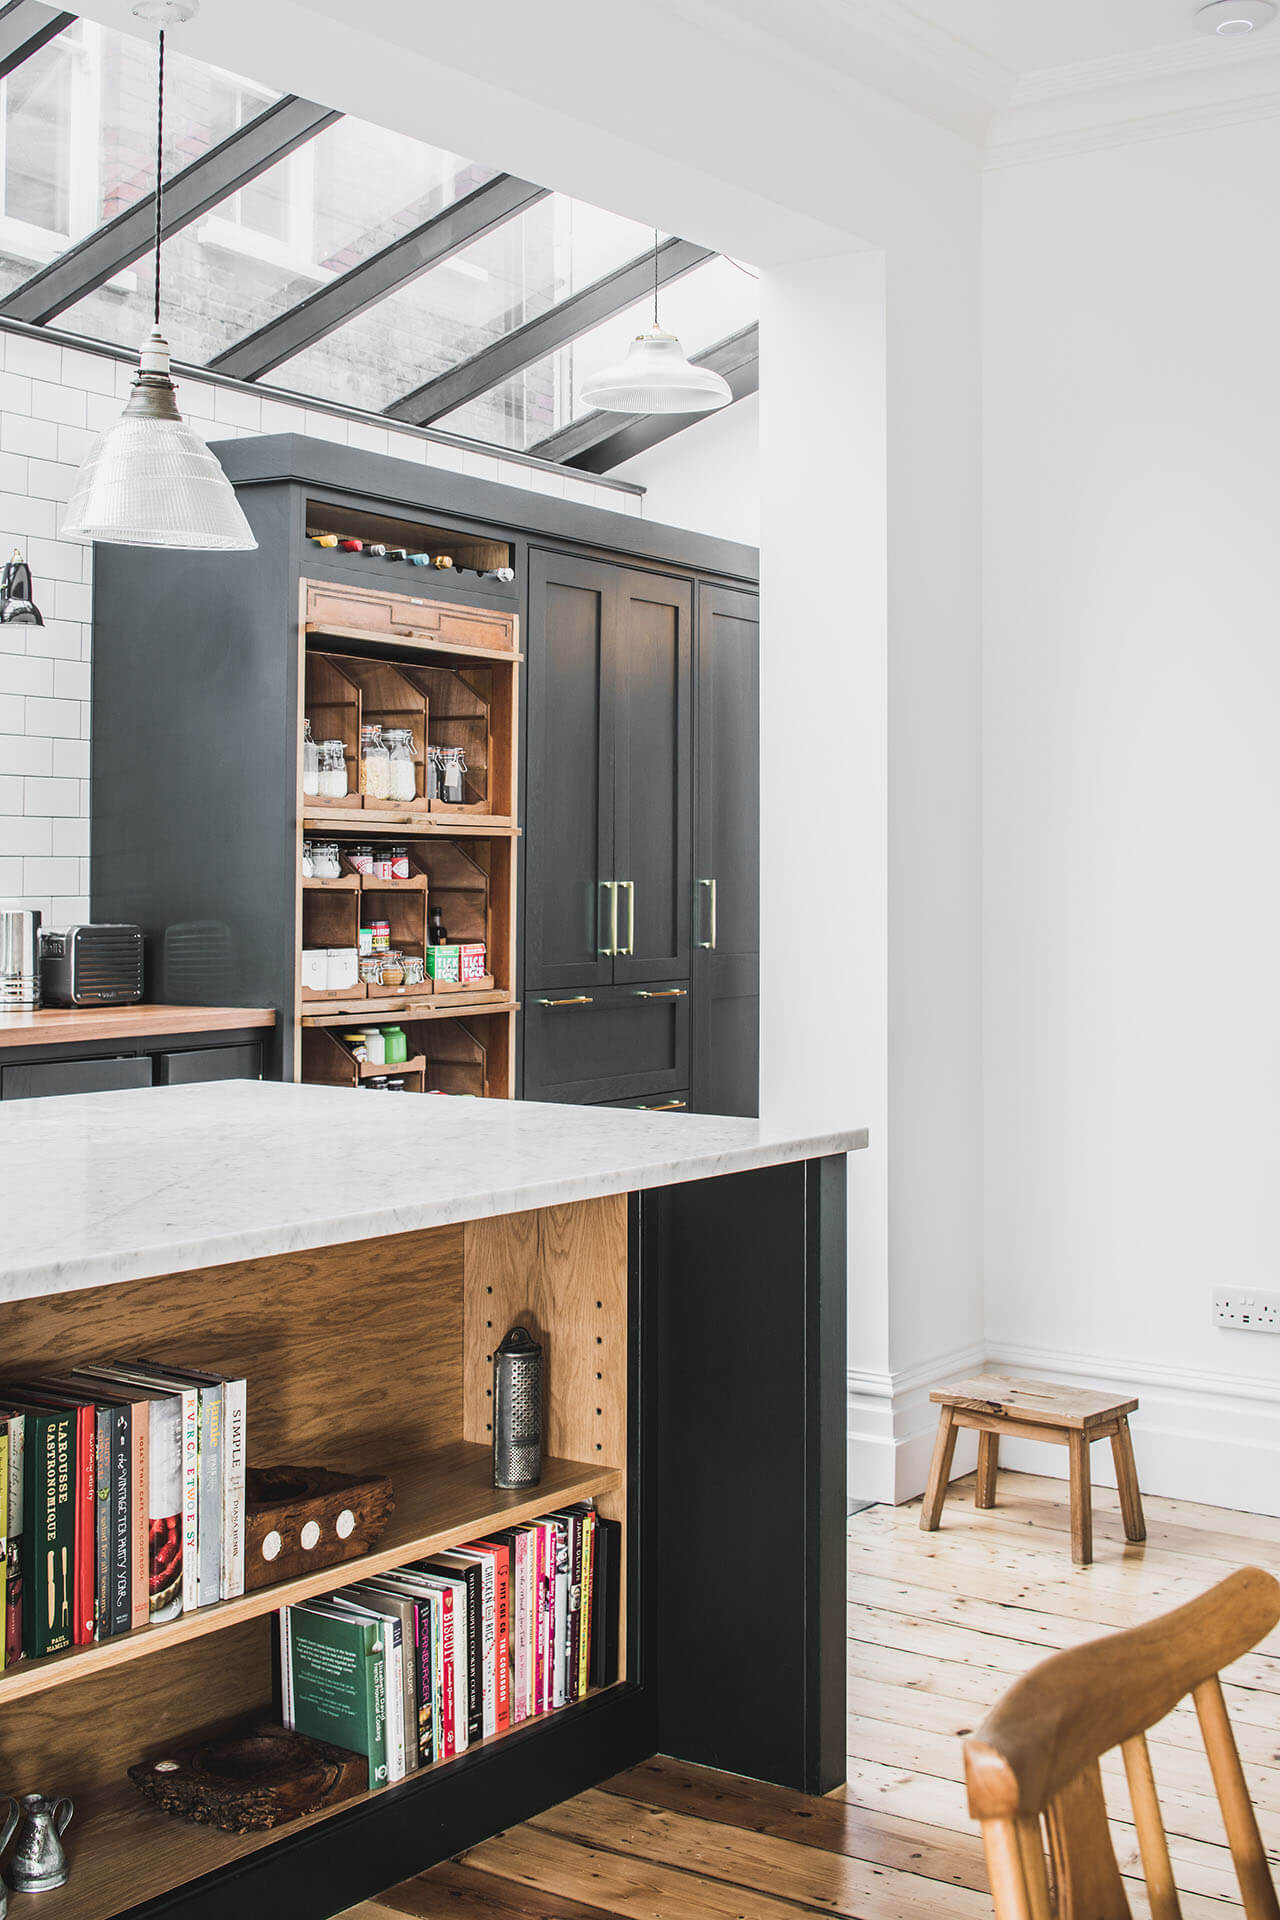 Dark Green Shaker kitchen with island with bookshelf and breakfast bar and a reclaimed vintage haberdashery cabinet